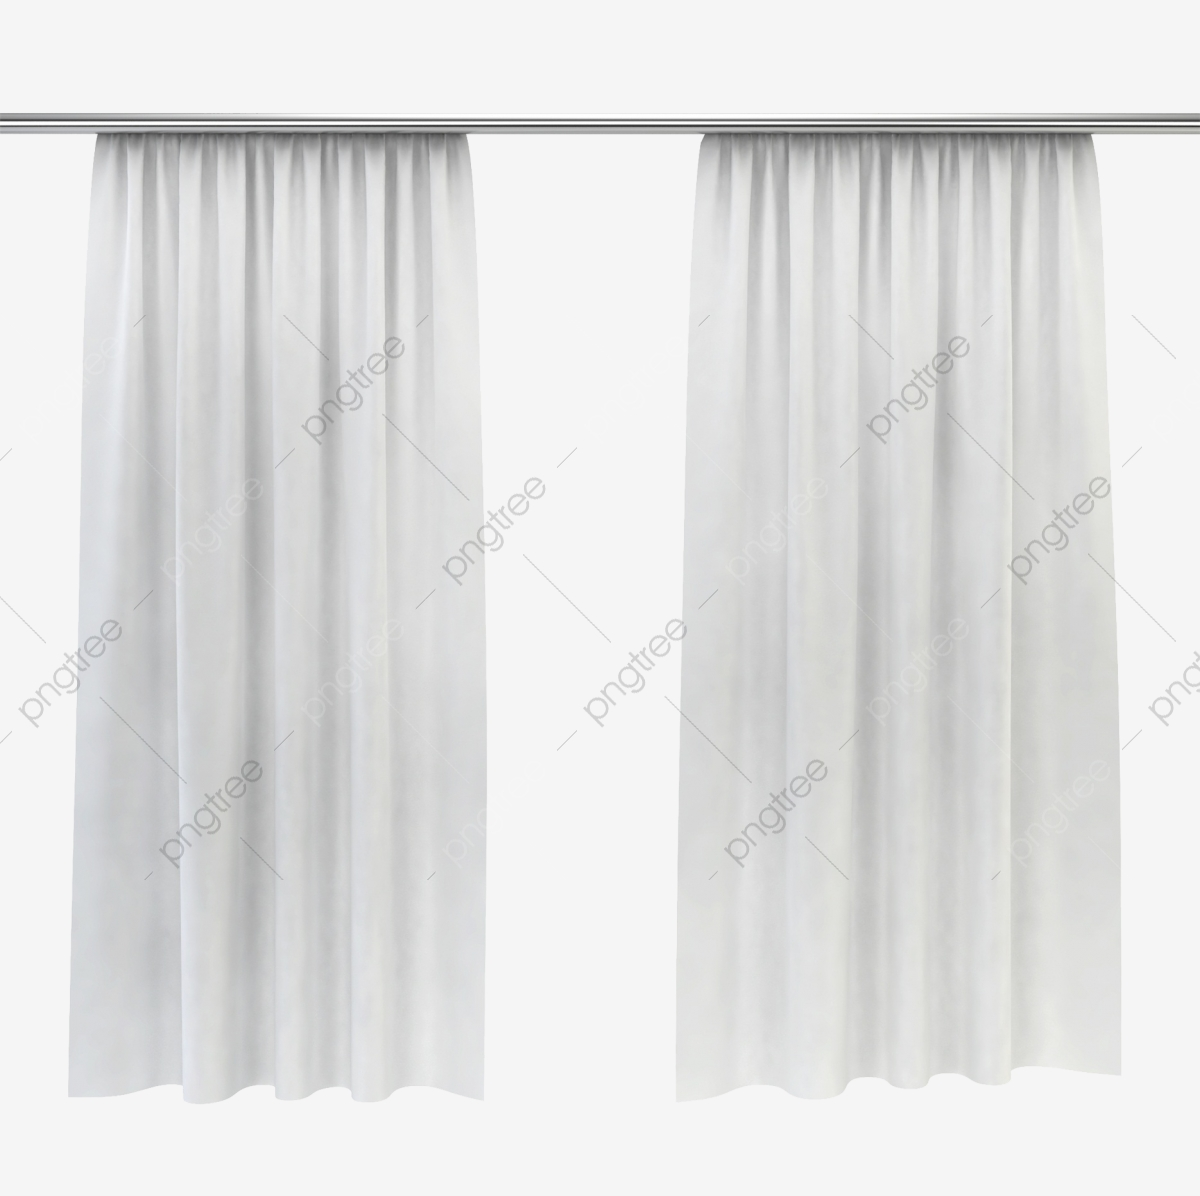 White Elegant Curtain Material Object Window Curtains Silk Curtain Png Transparent Clipart Image And Psd File For Free Download